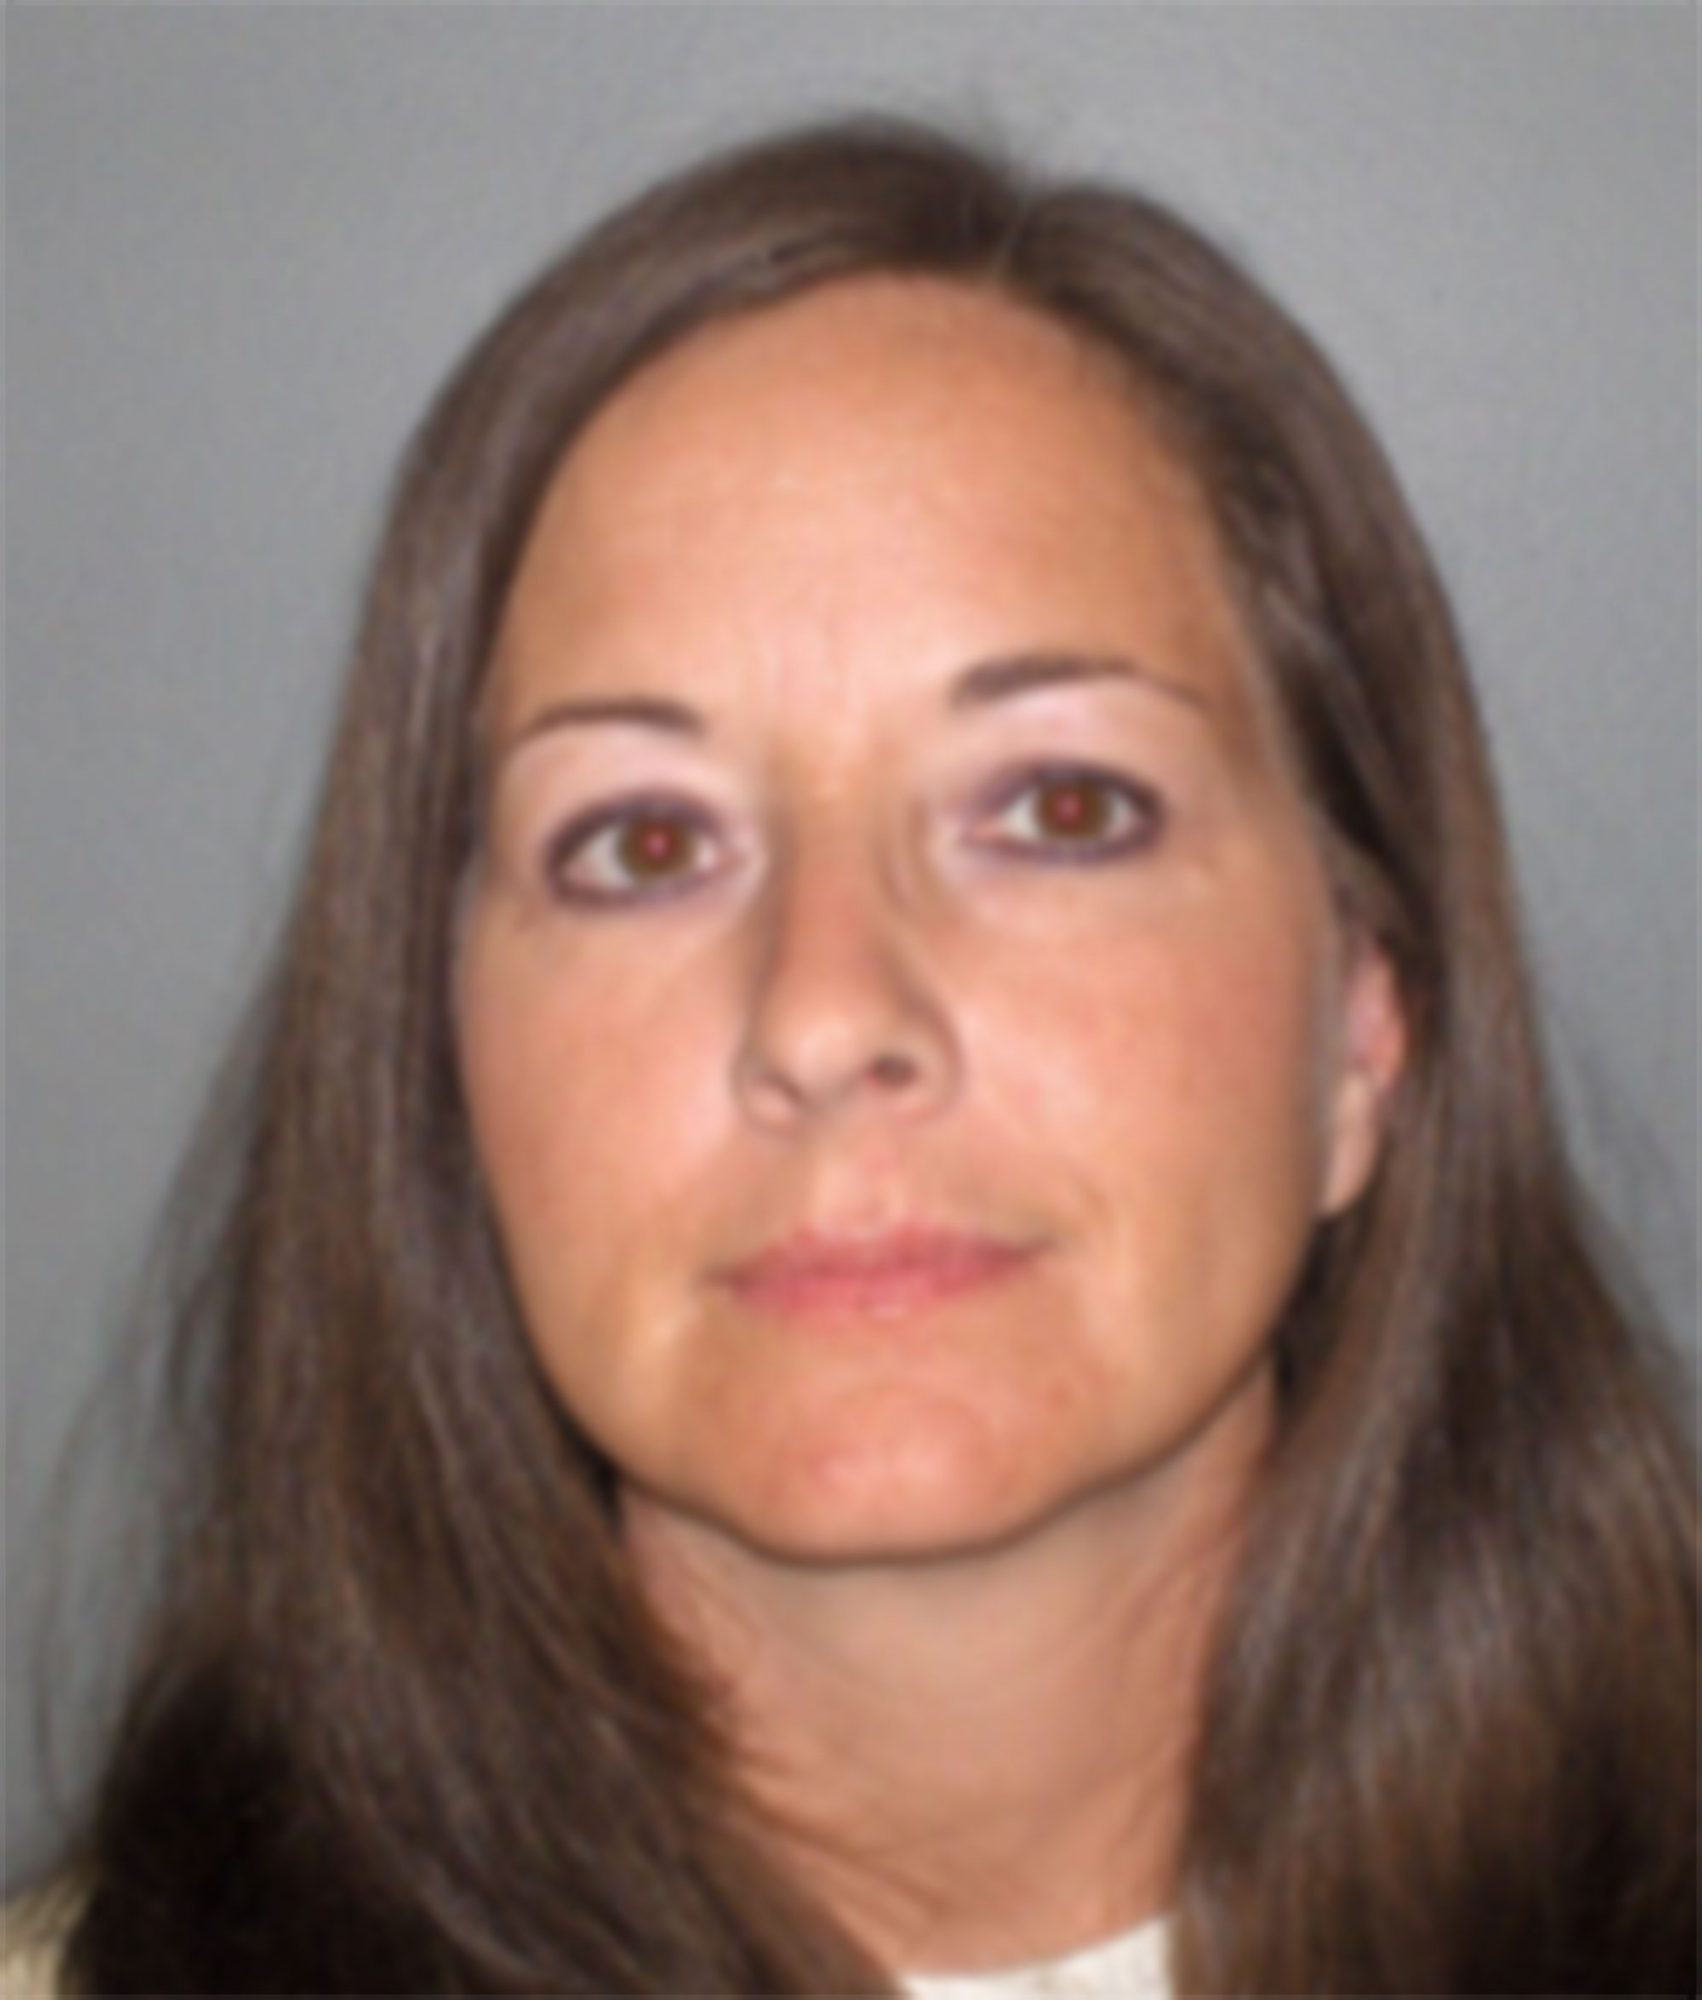 Susan Smith Credit: SC Department of Corrections